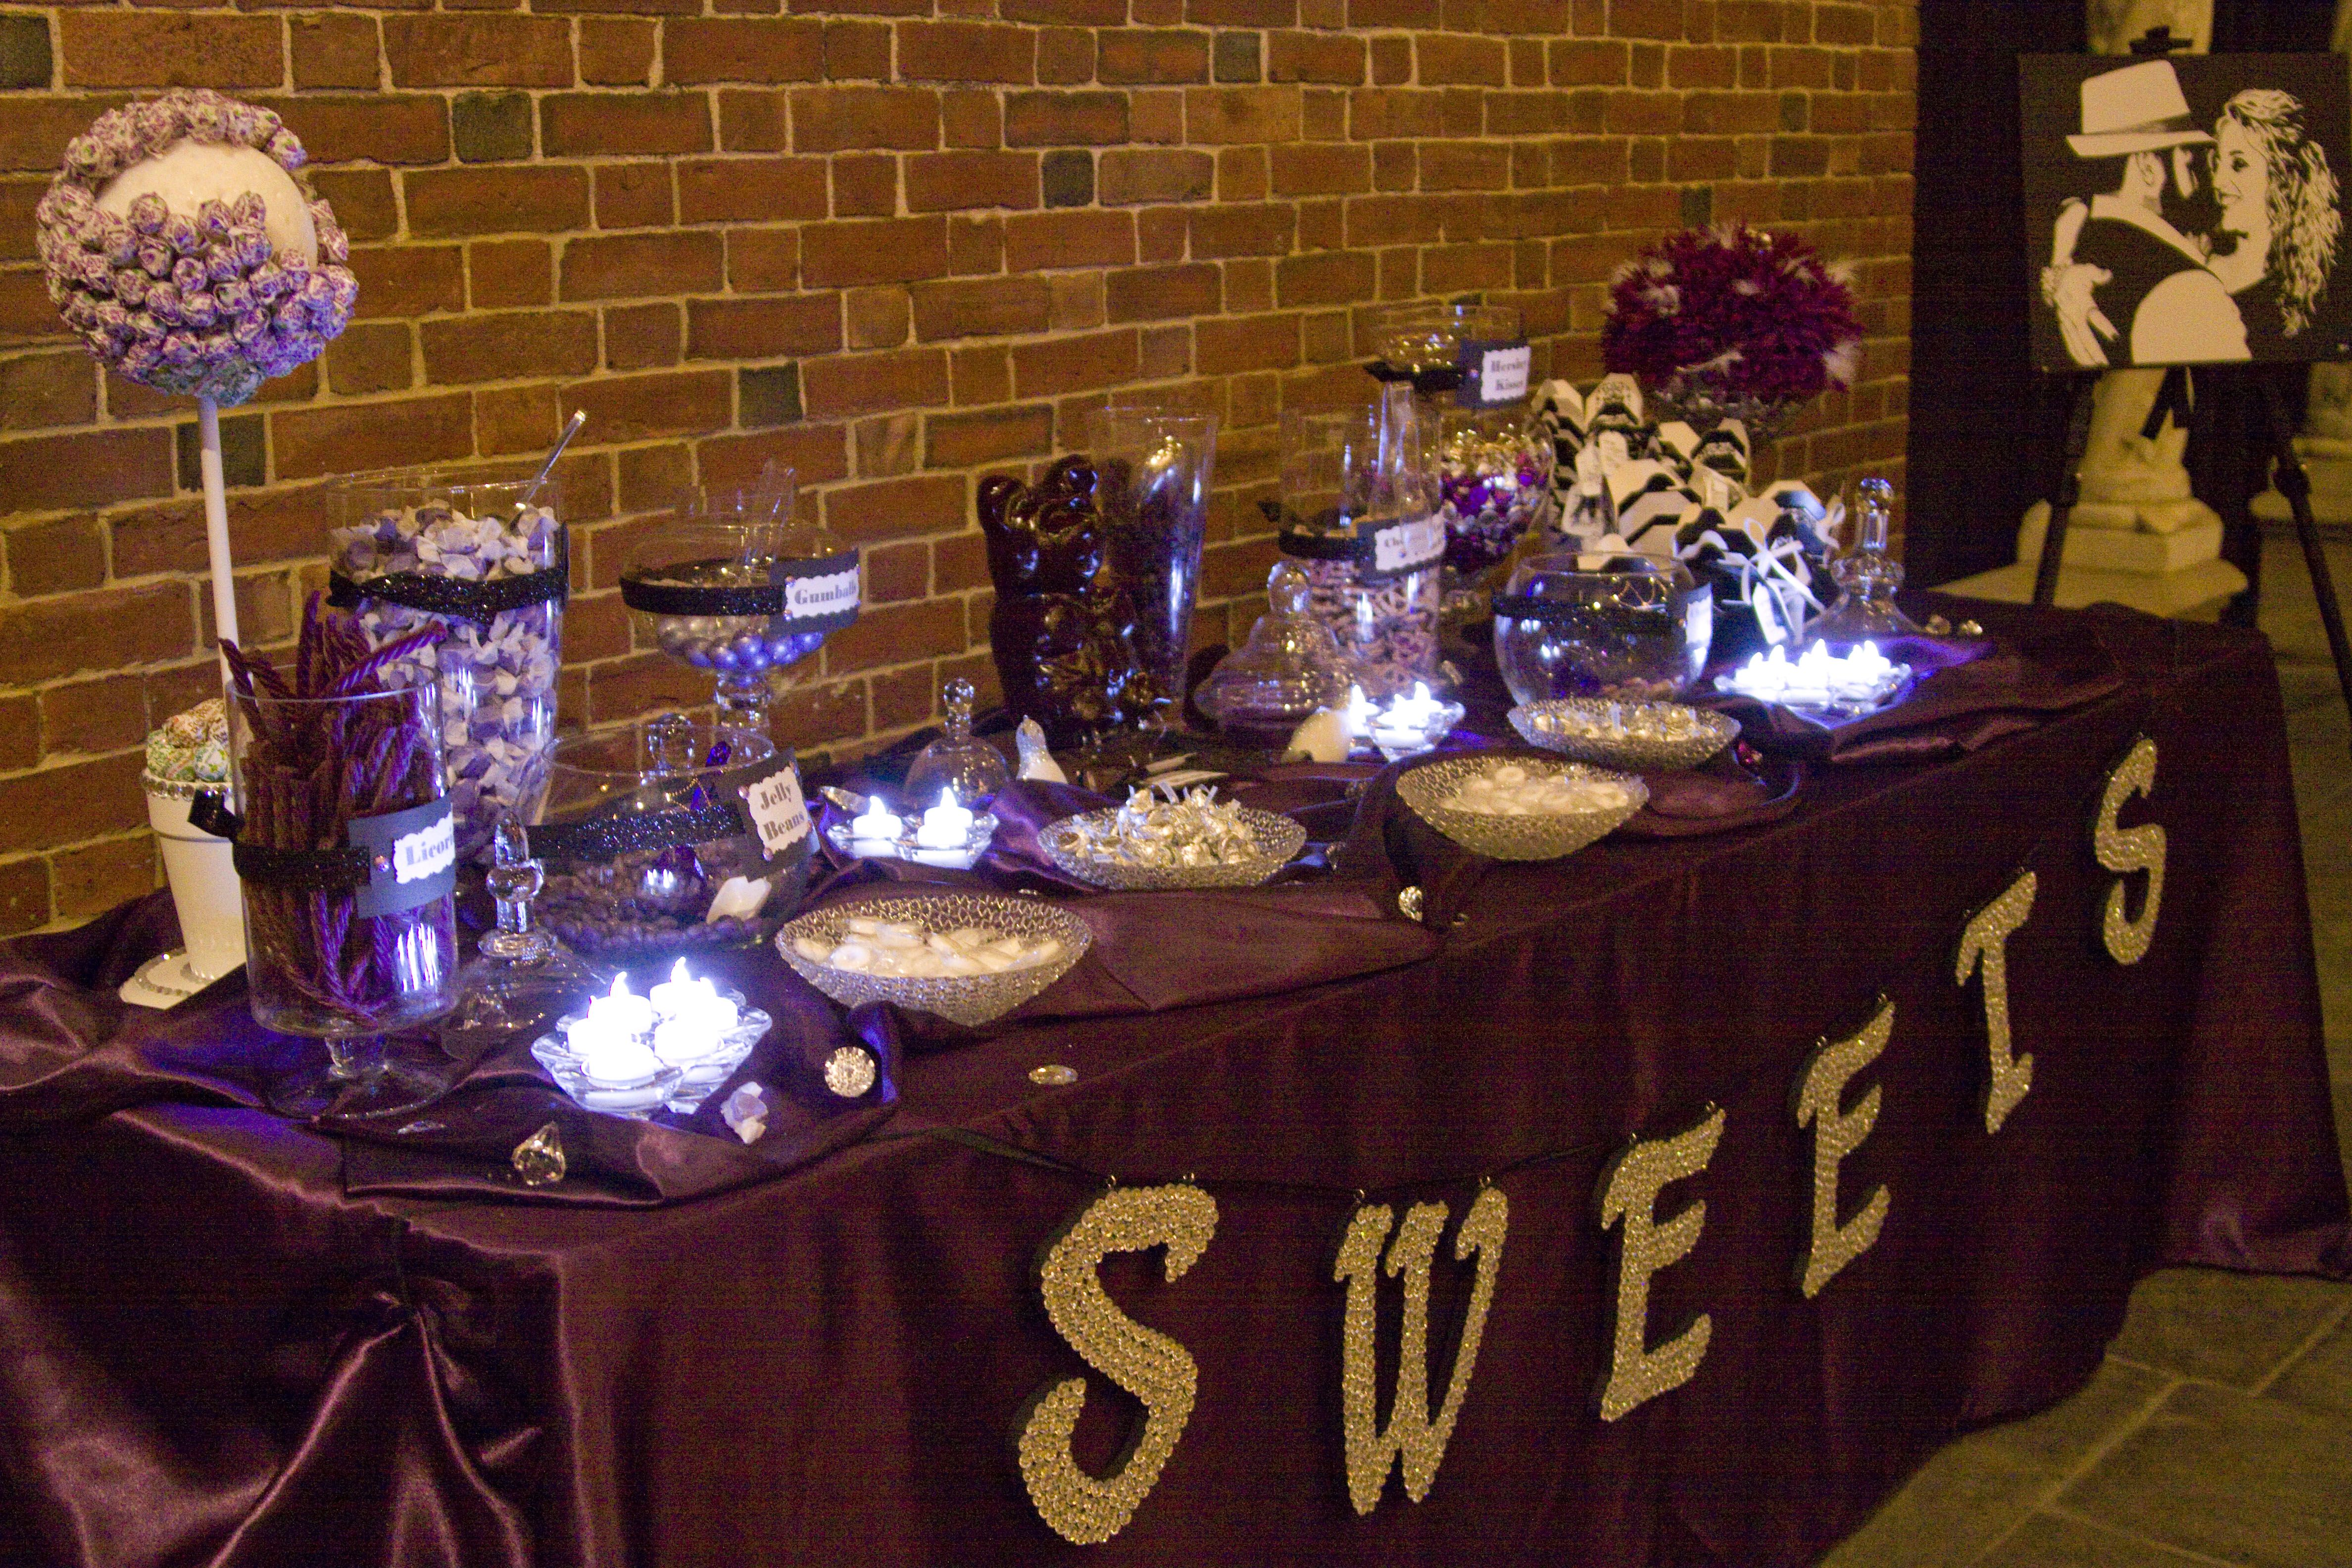 We used LED candles on the Candy Buffet, so no one would burn themselves.